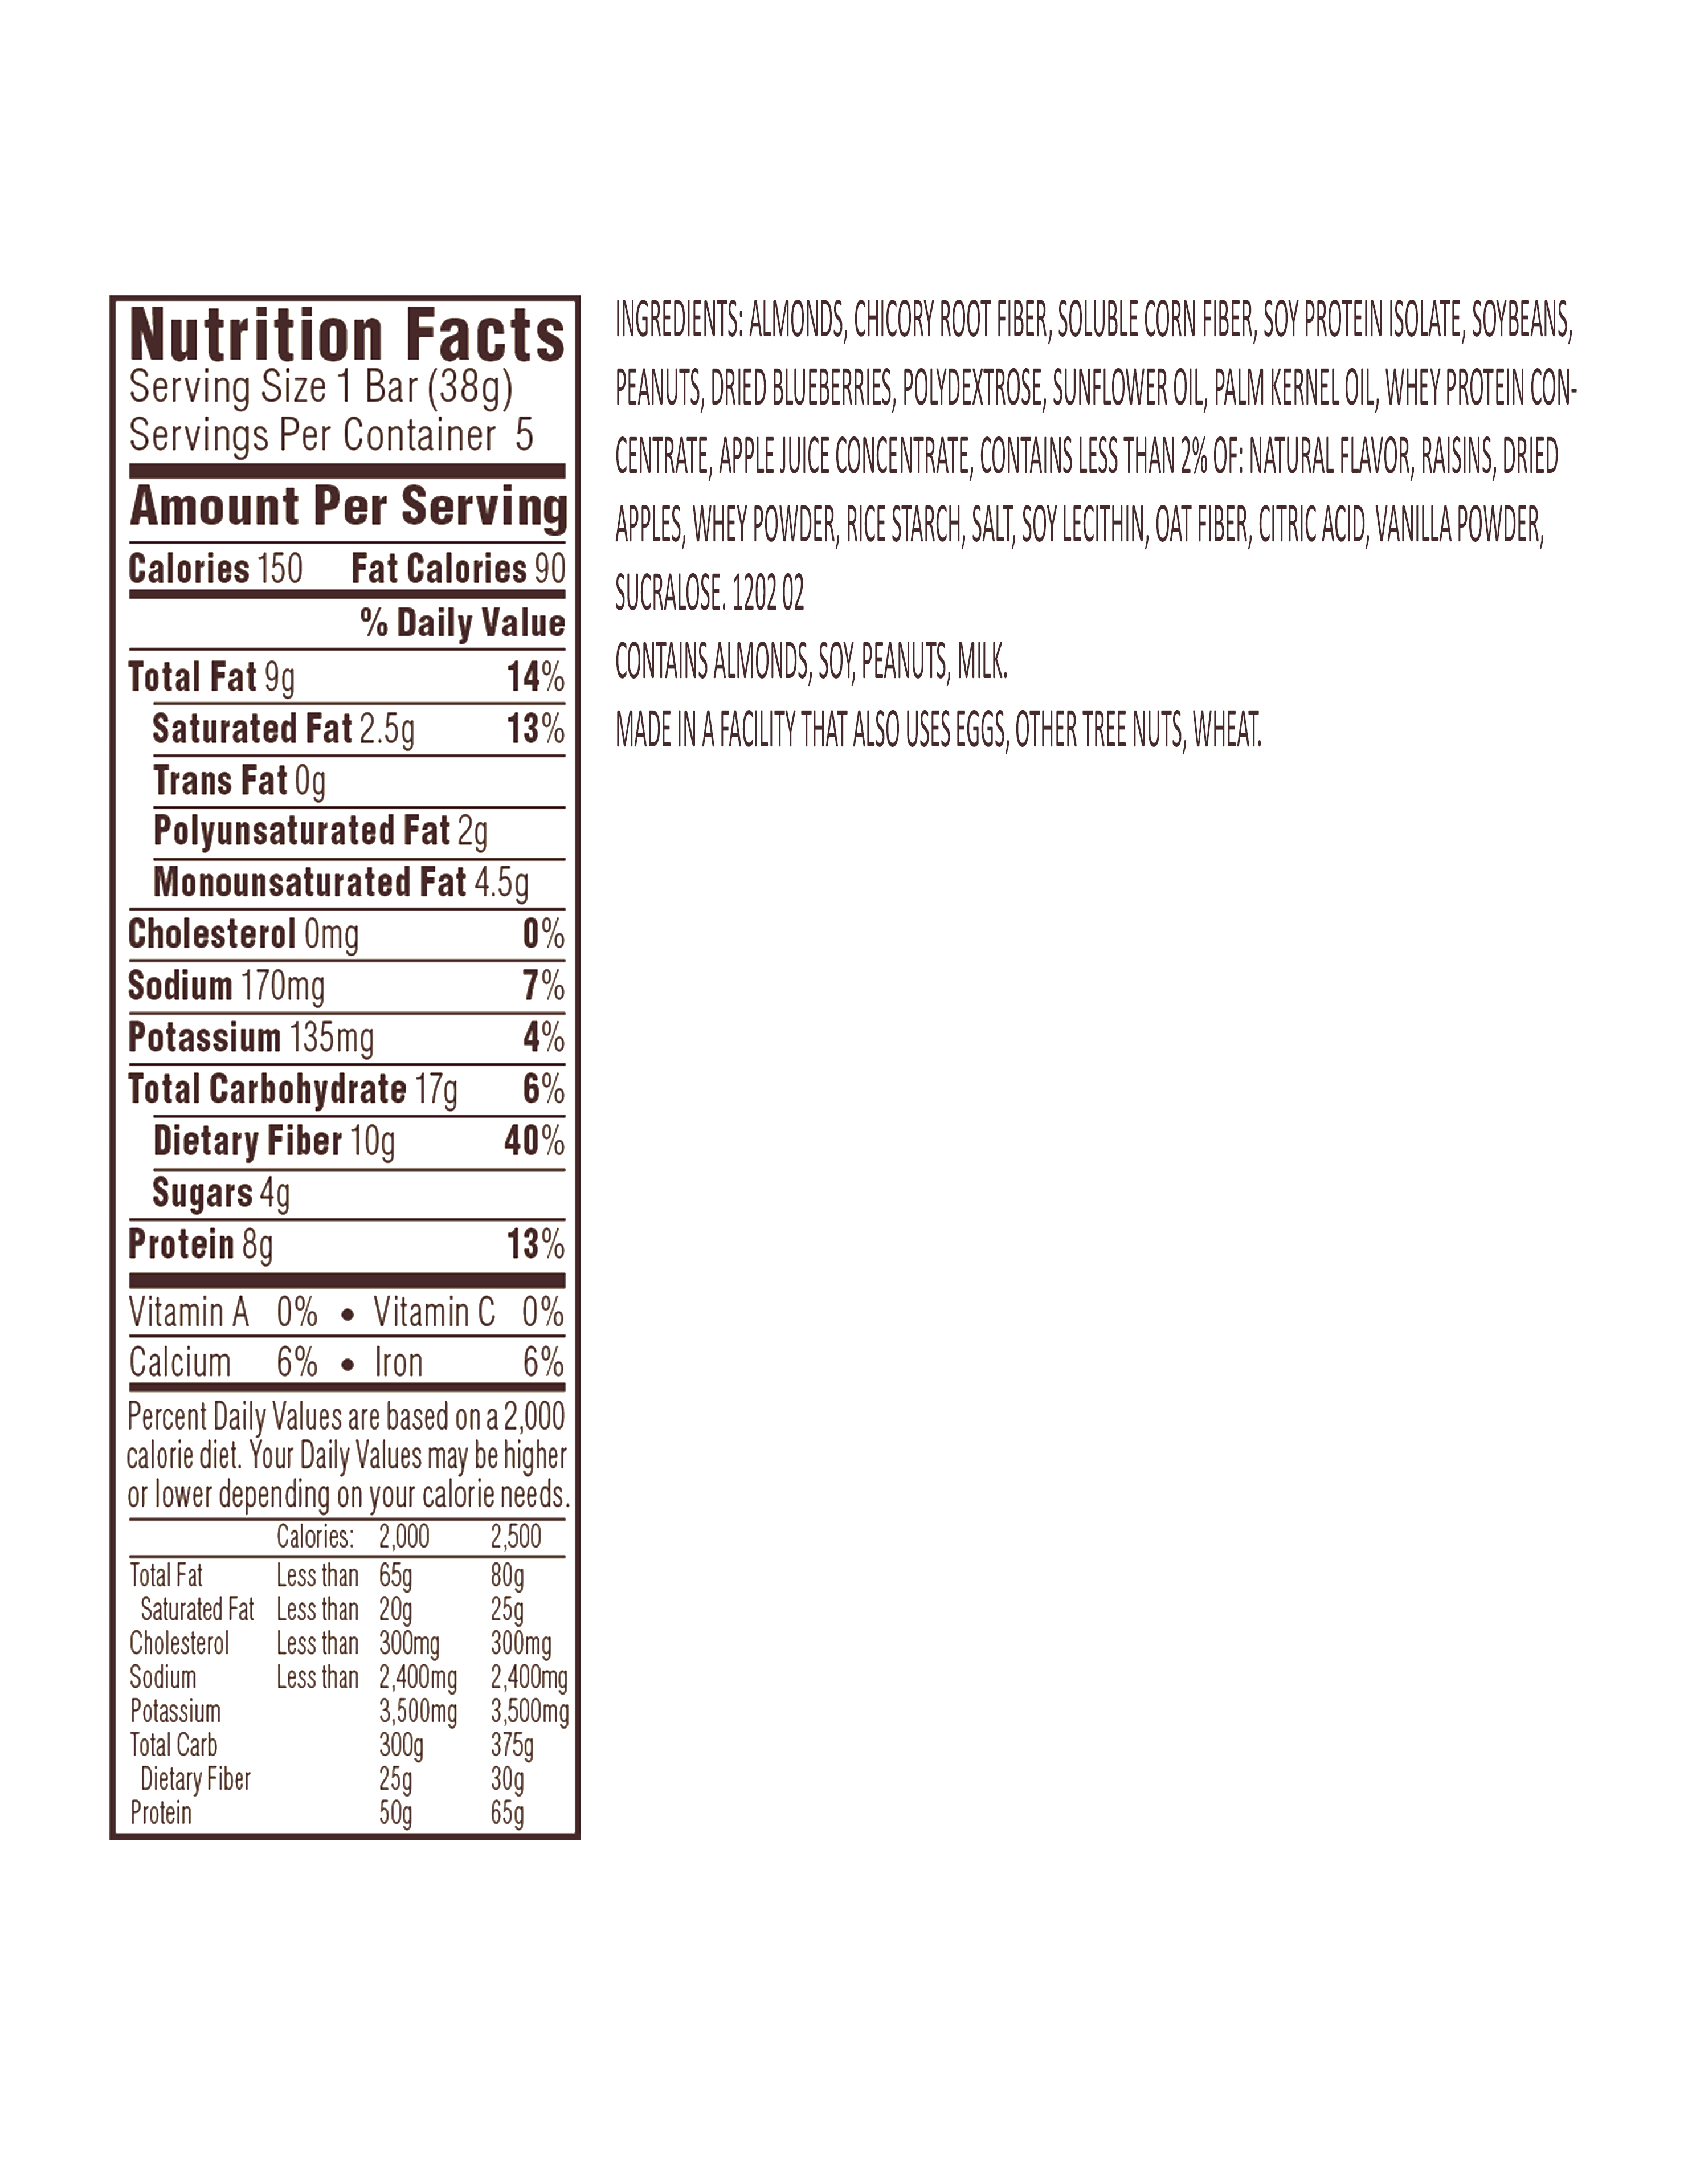 How to calculate percentage of weight loss - Nutrition Facts Label